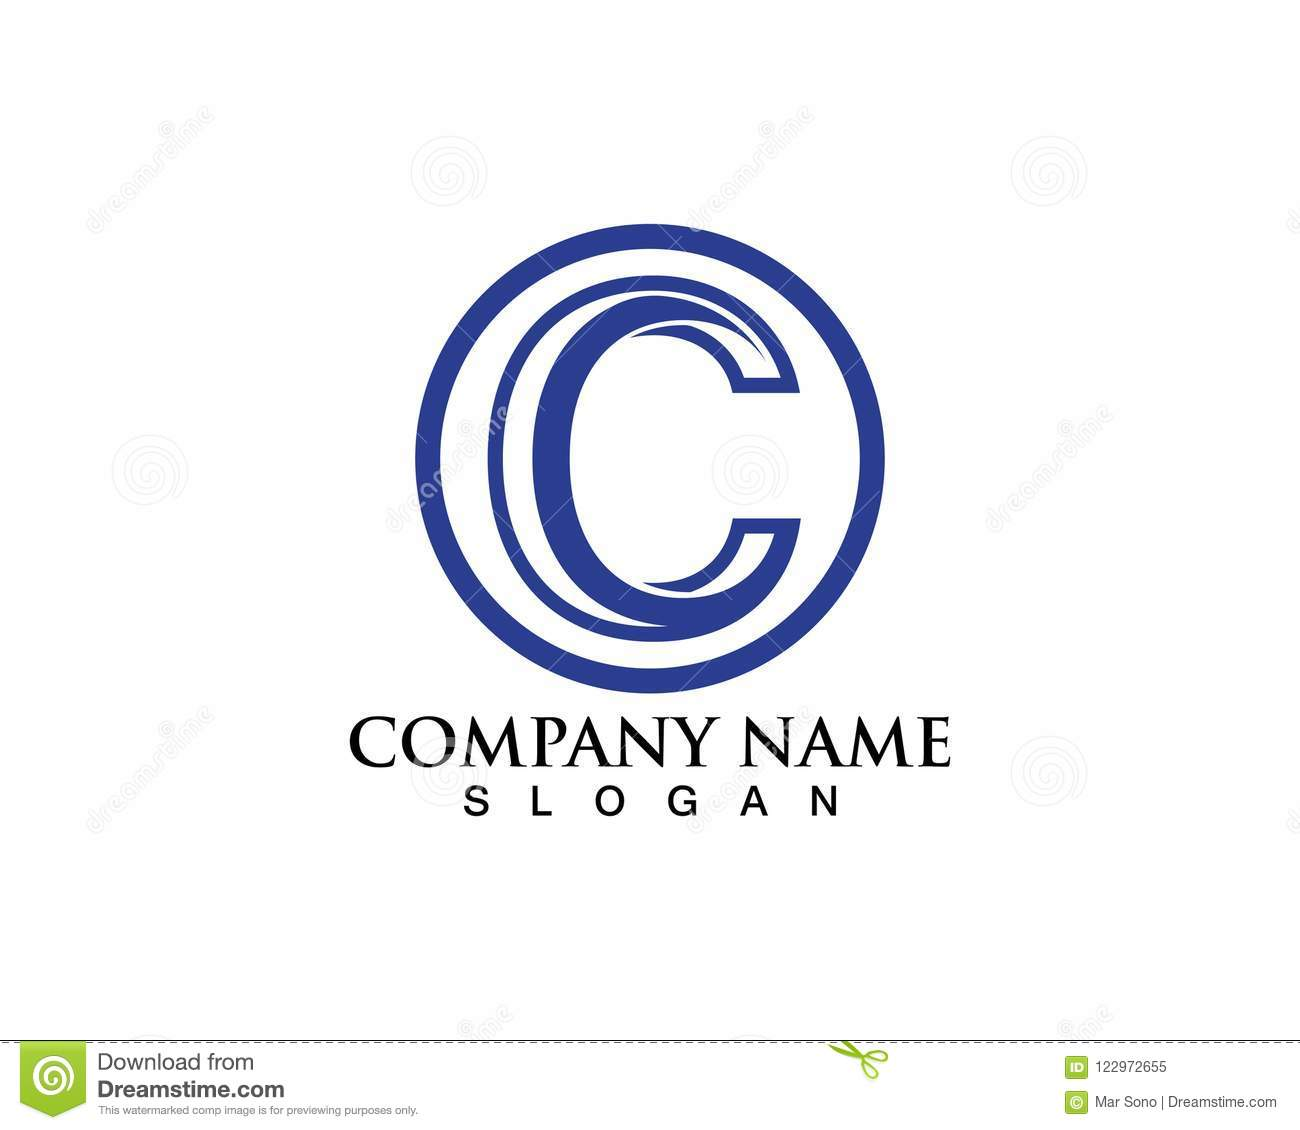 C Logo And Symbols Vector Template Stock Vector - Illustration of ...